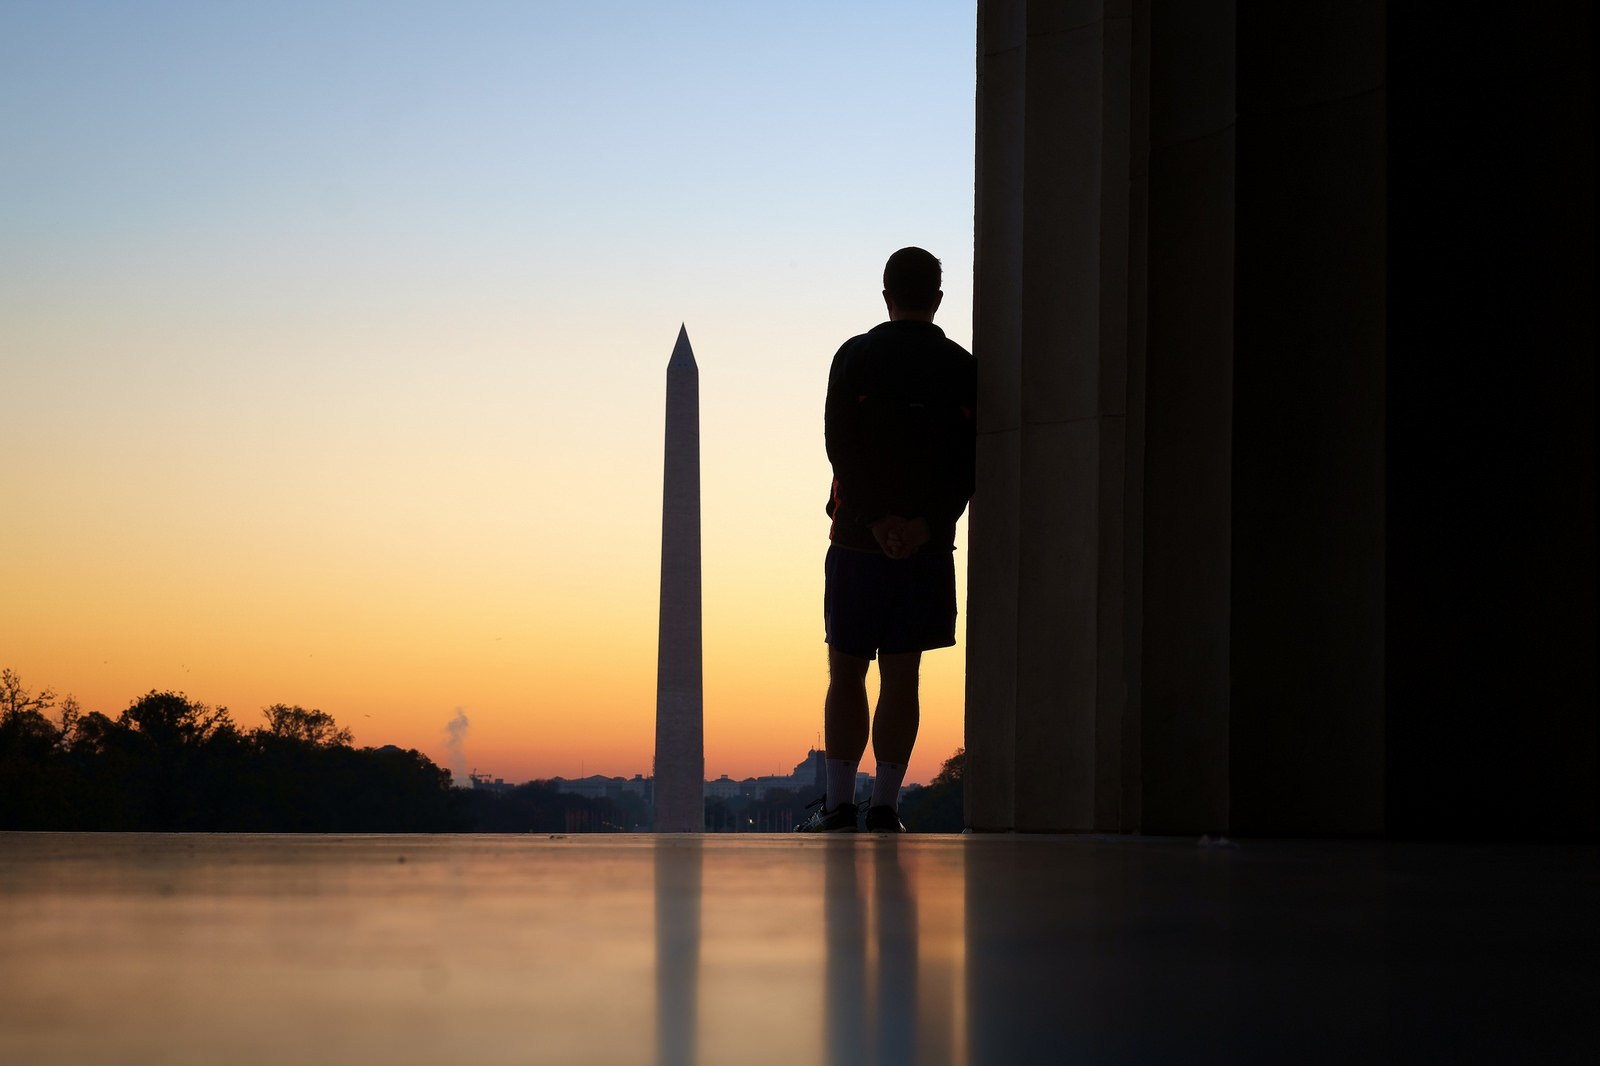 """Washington, DC sunrise""  November, 2015, Washington, DC Fujifilm XPro1, 56mm, f/8, 1/25, ISO 200"